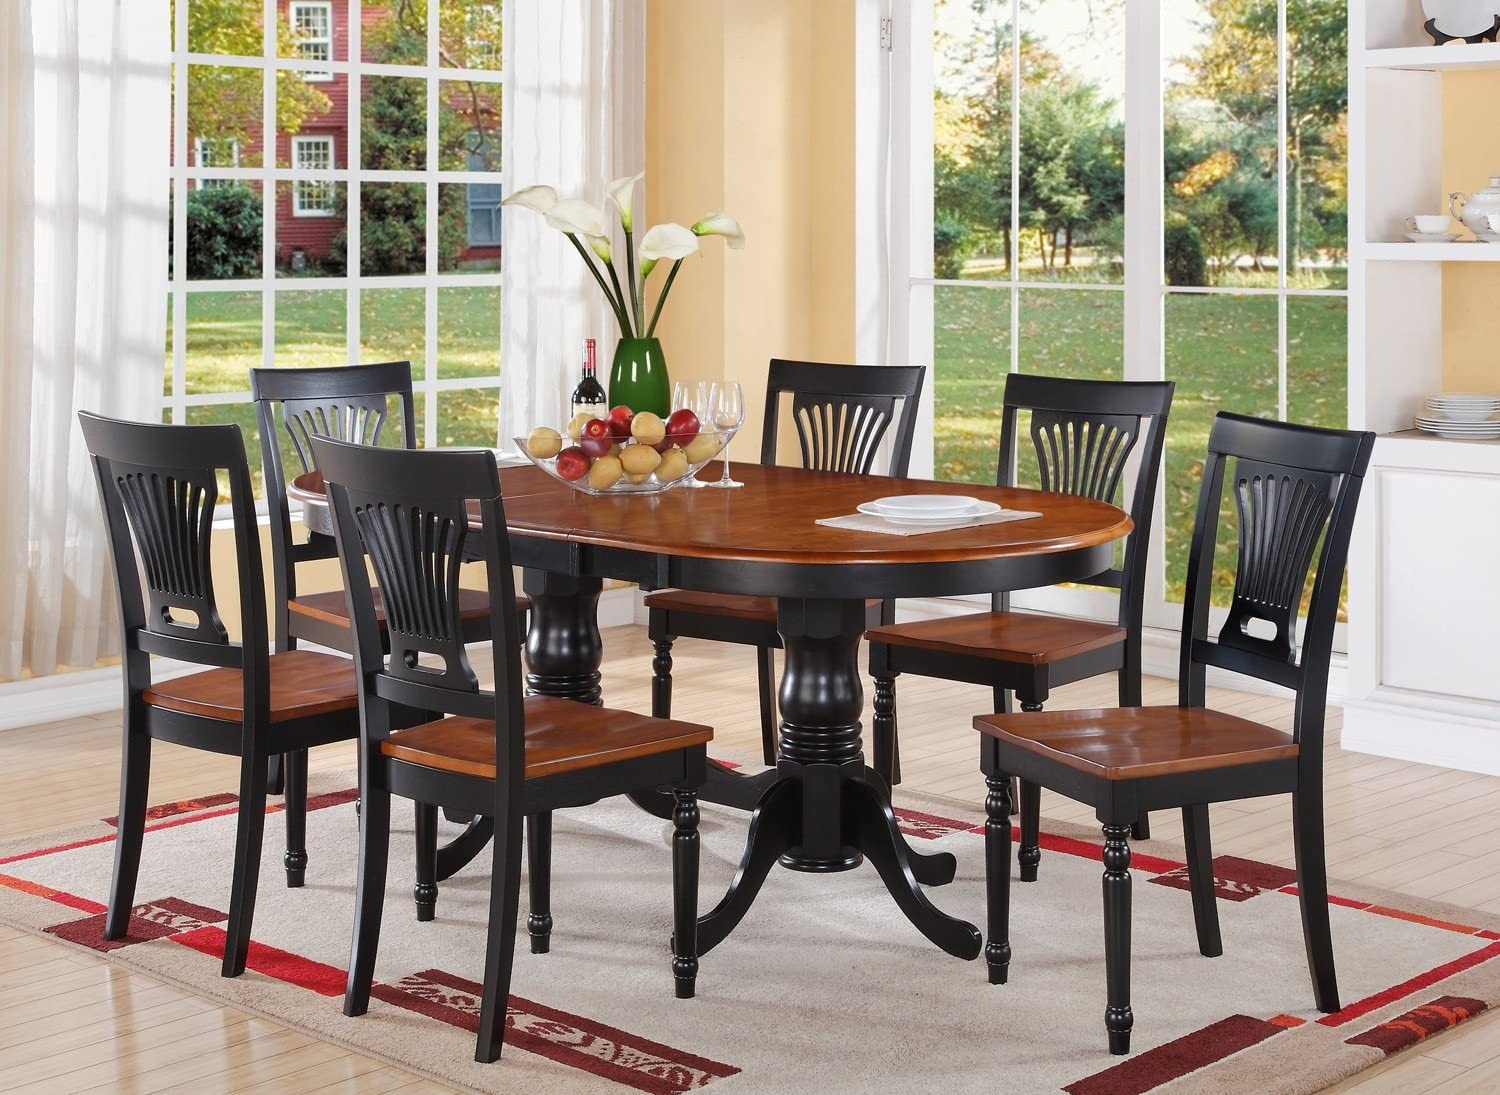 Amazon Com 7 Pc Dining Room Set Dining Table And 6 Kitchen Dining Chairs Furniture Decor